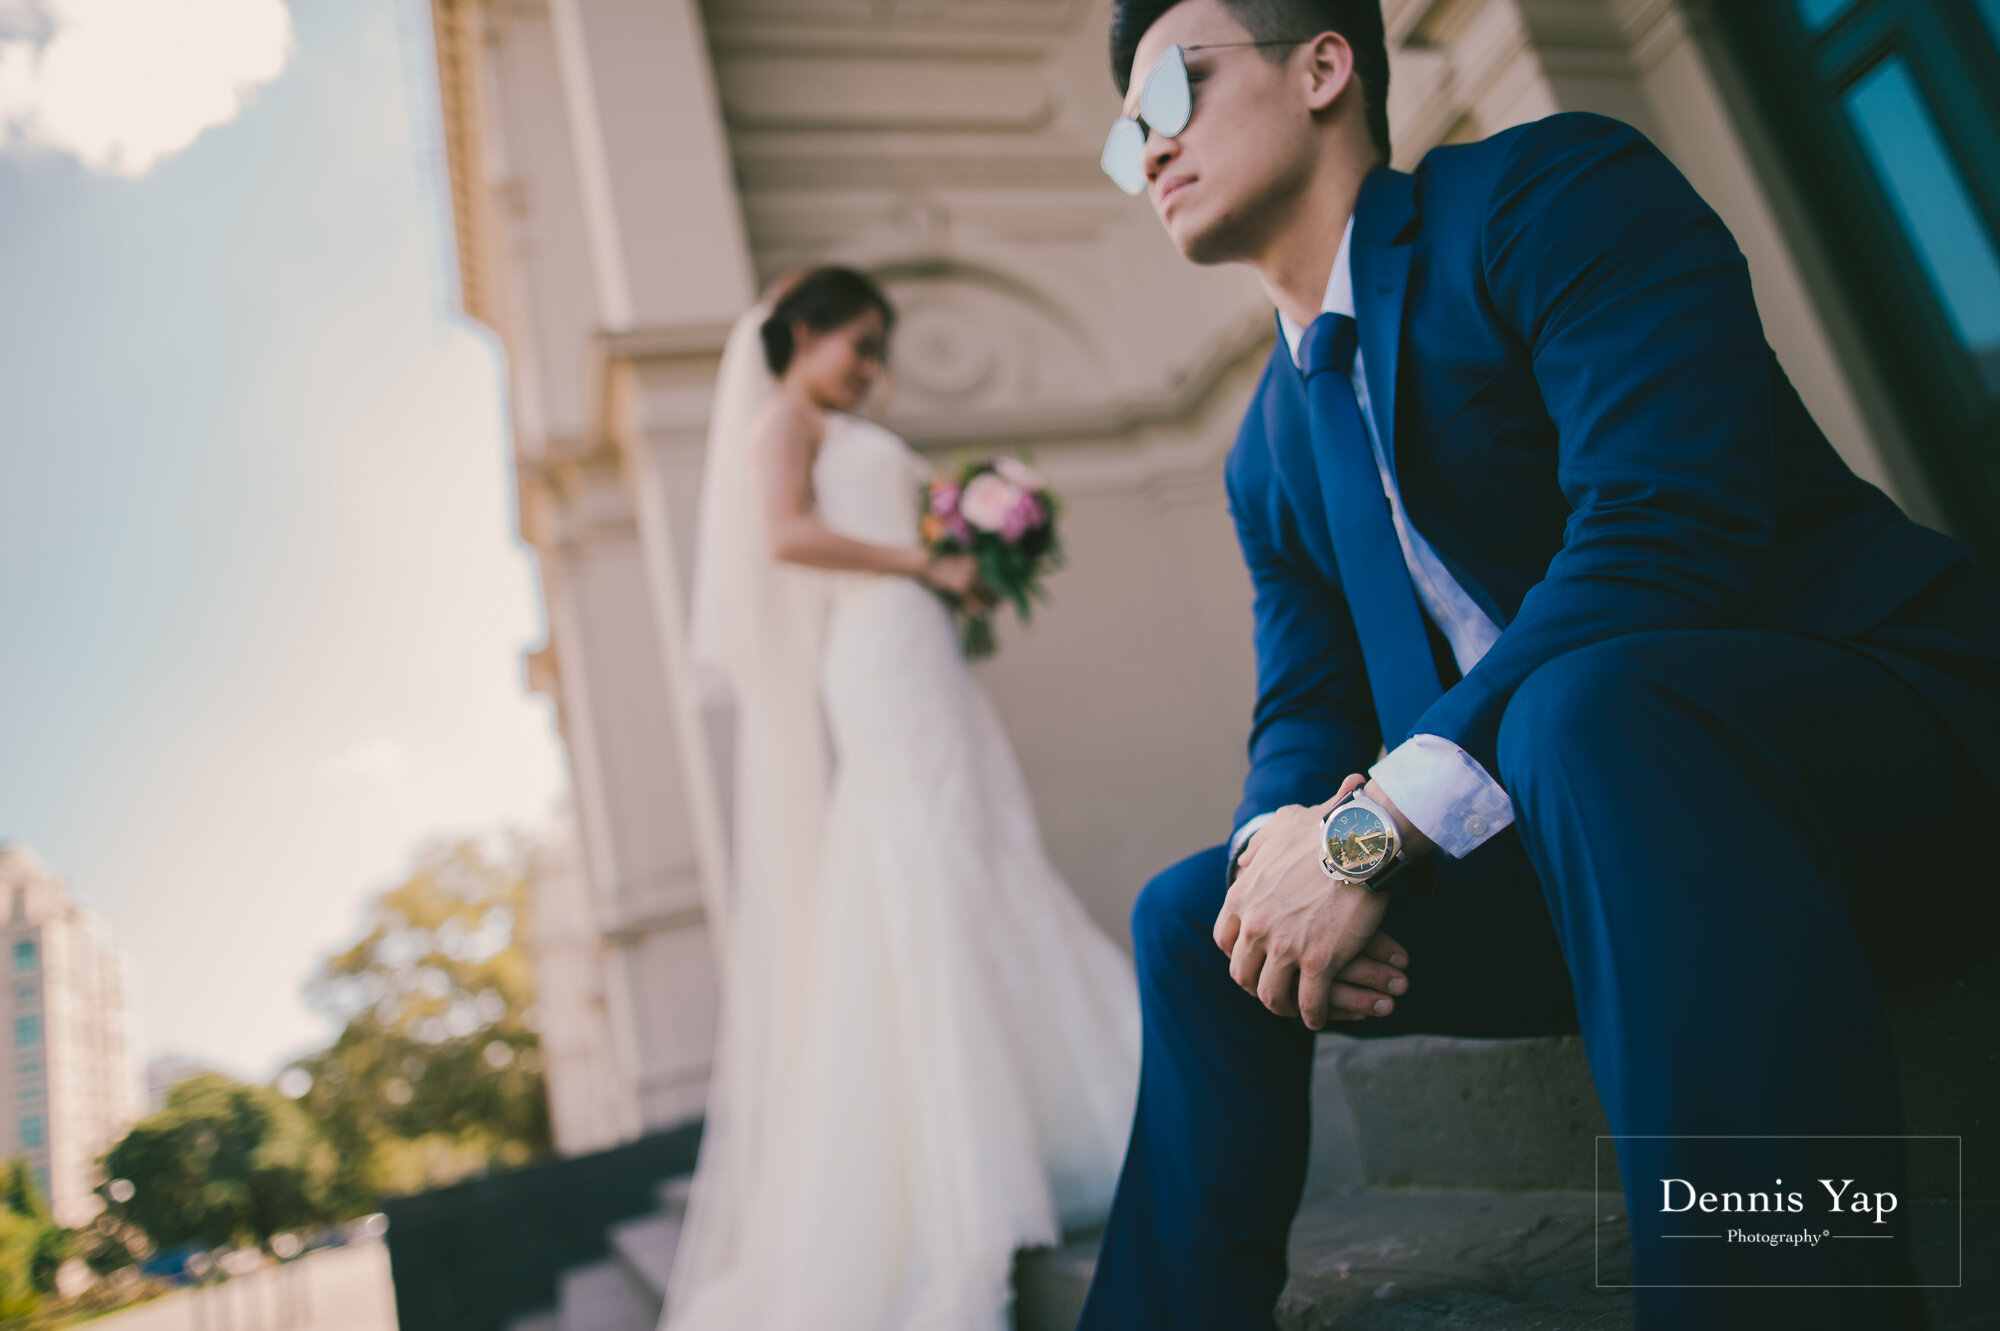 kevin junie melbourne pre wedding lifestyle natural dennis yap photography malaysia top wedding photographer-9.jpg